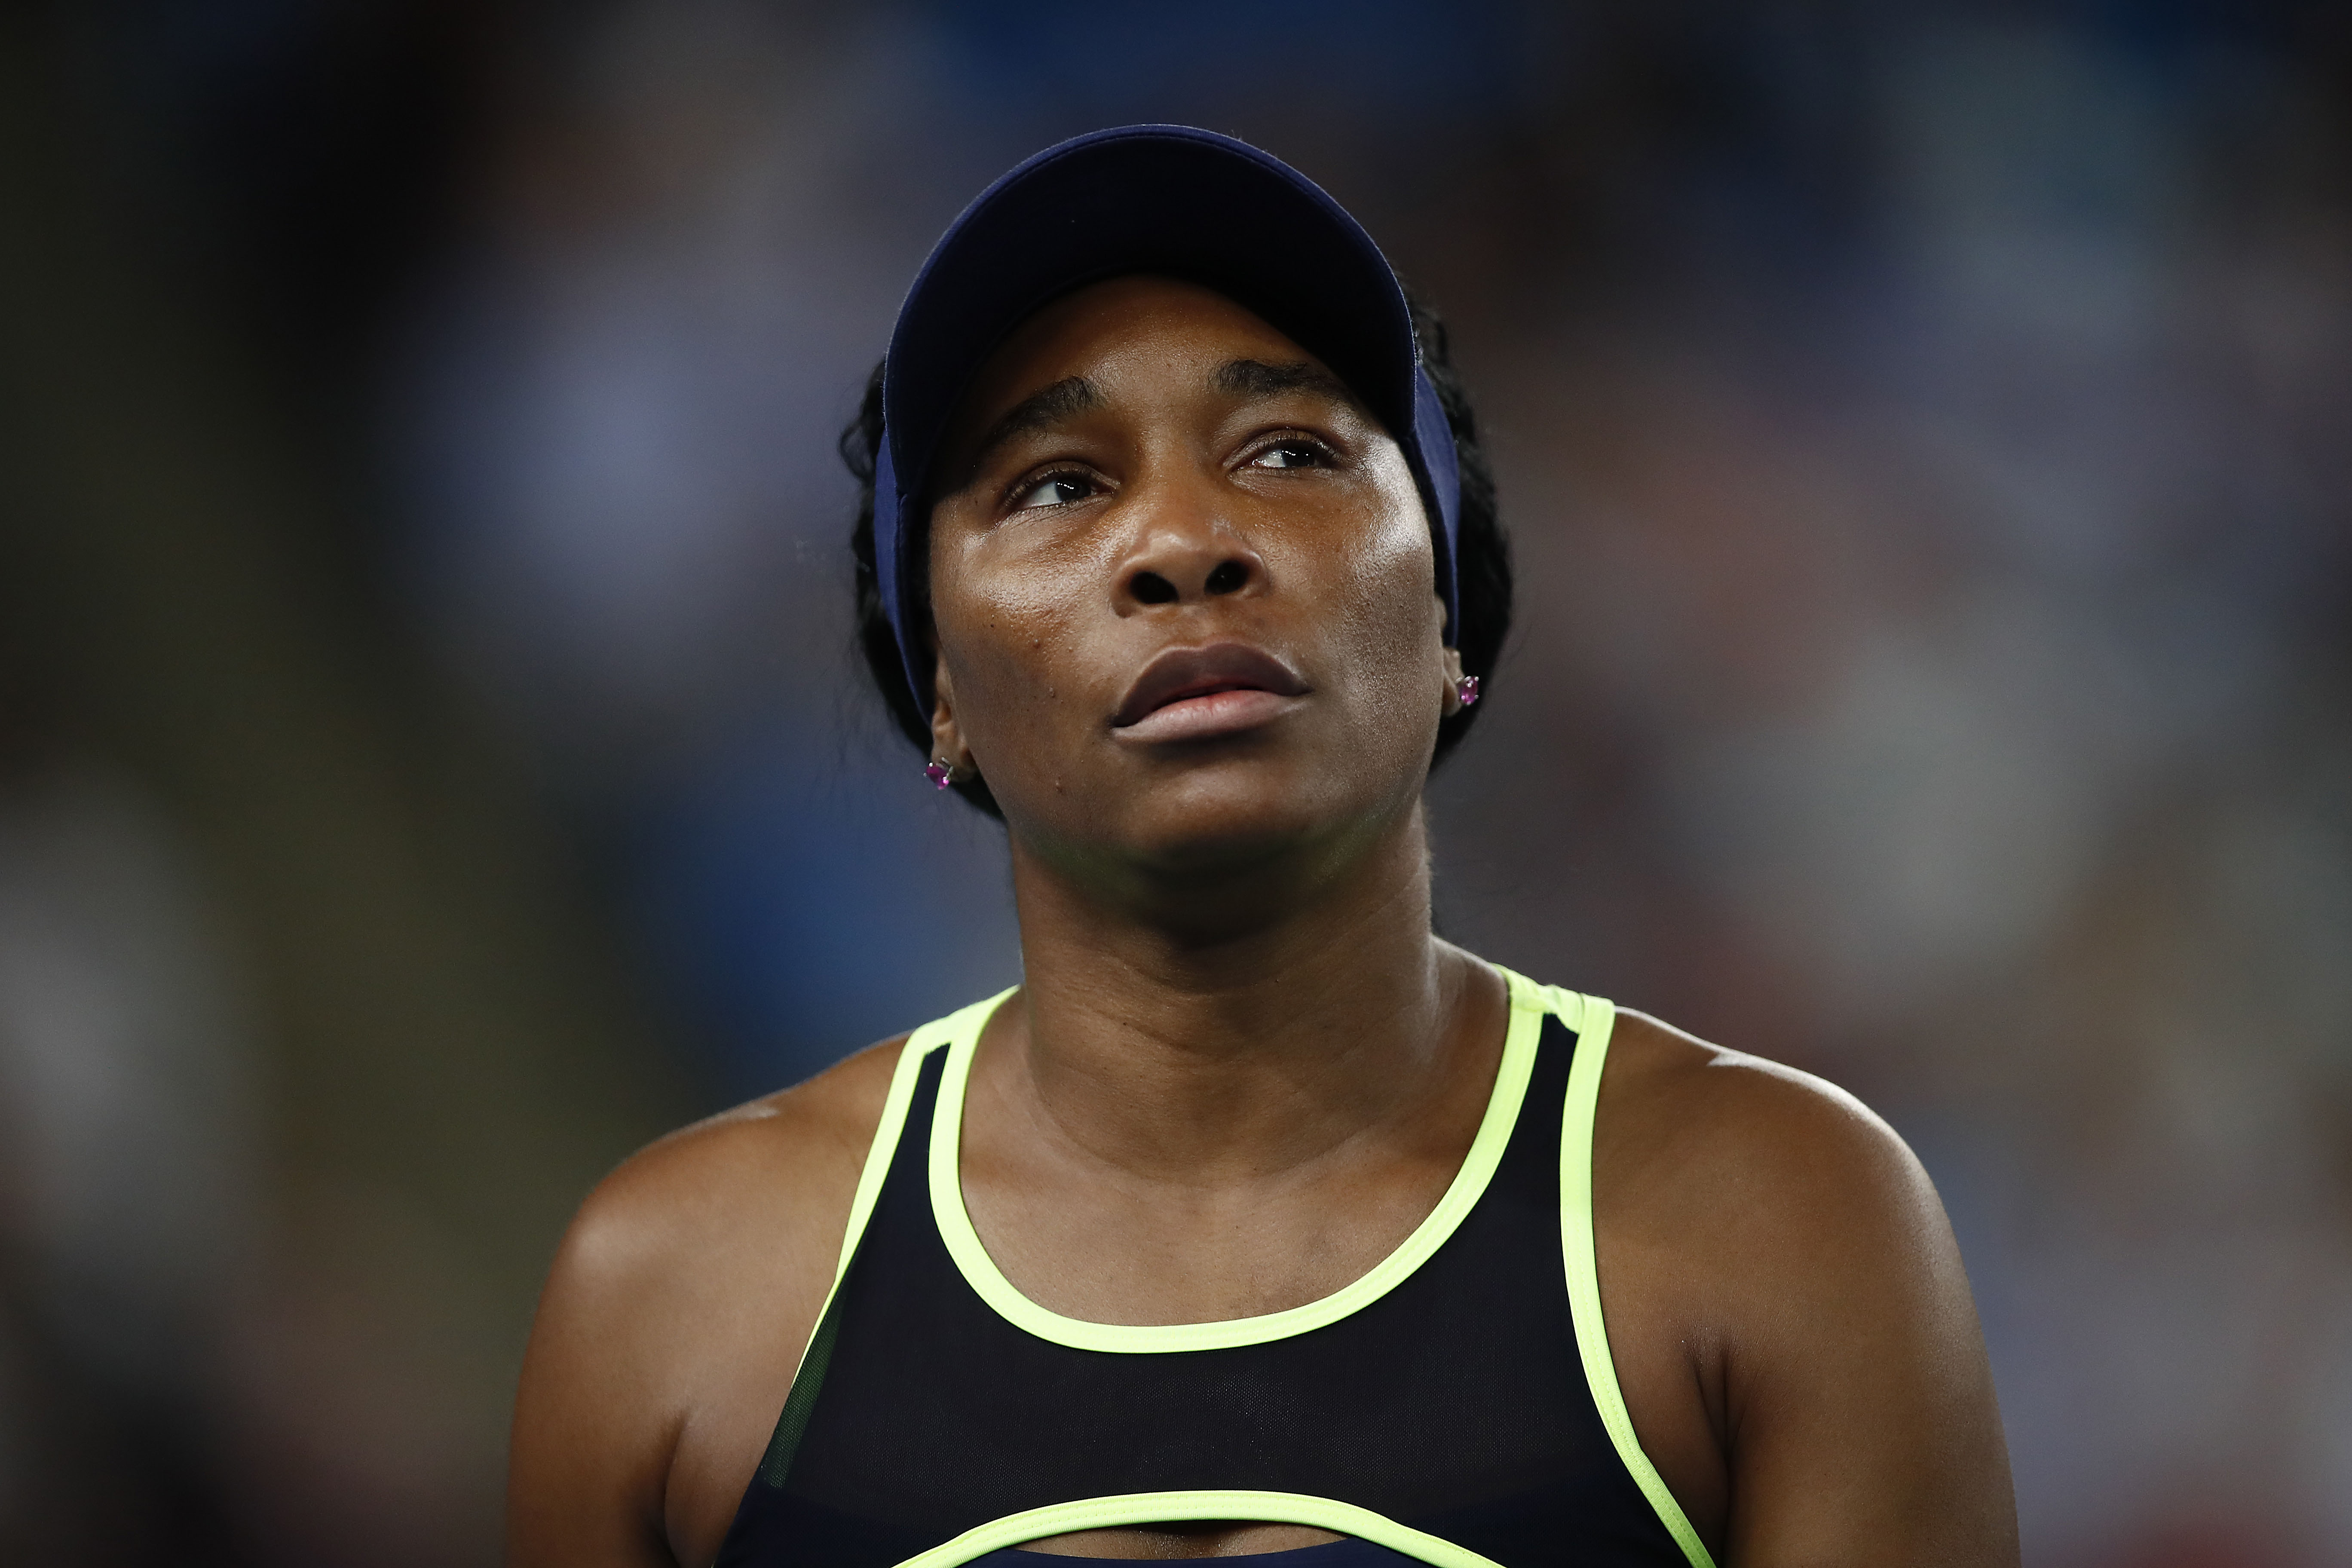 Venus Williams looks on during a match in Melbourne on January 20.